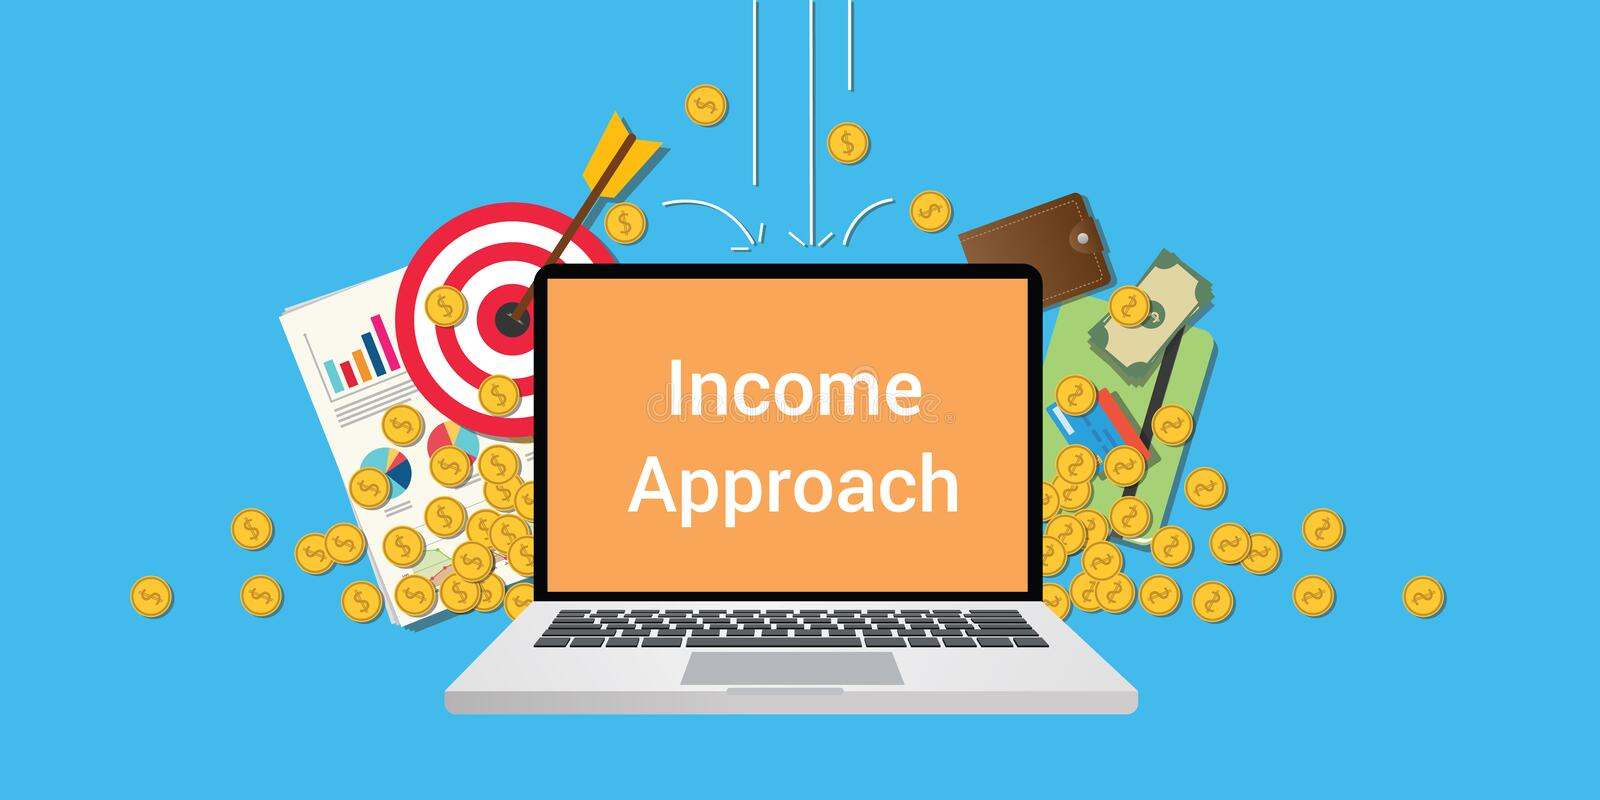 Income approach illustration with text on laptop display with business icon money gold coin falling from sky and graph royalty free illustration